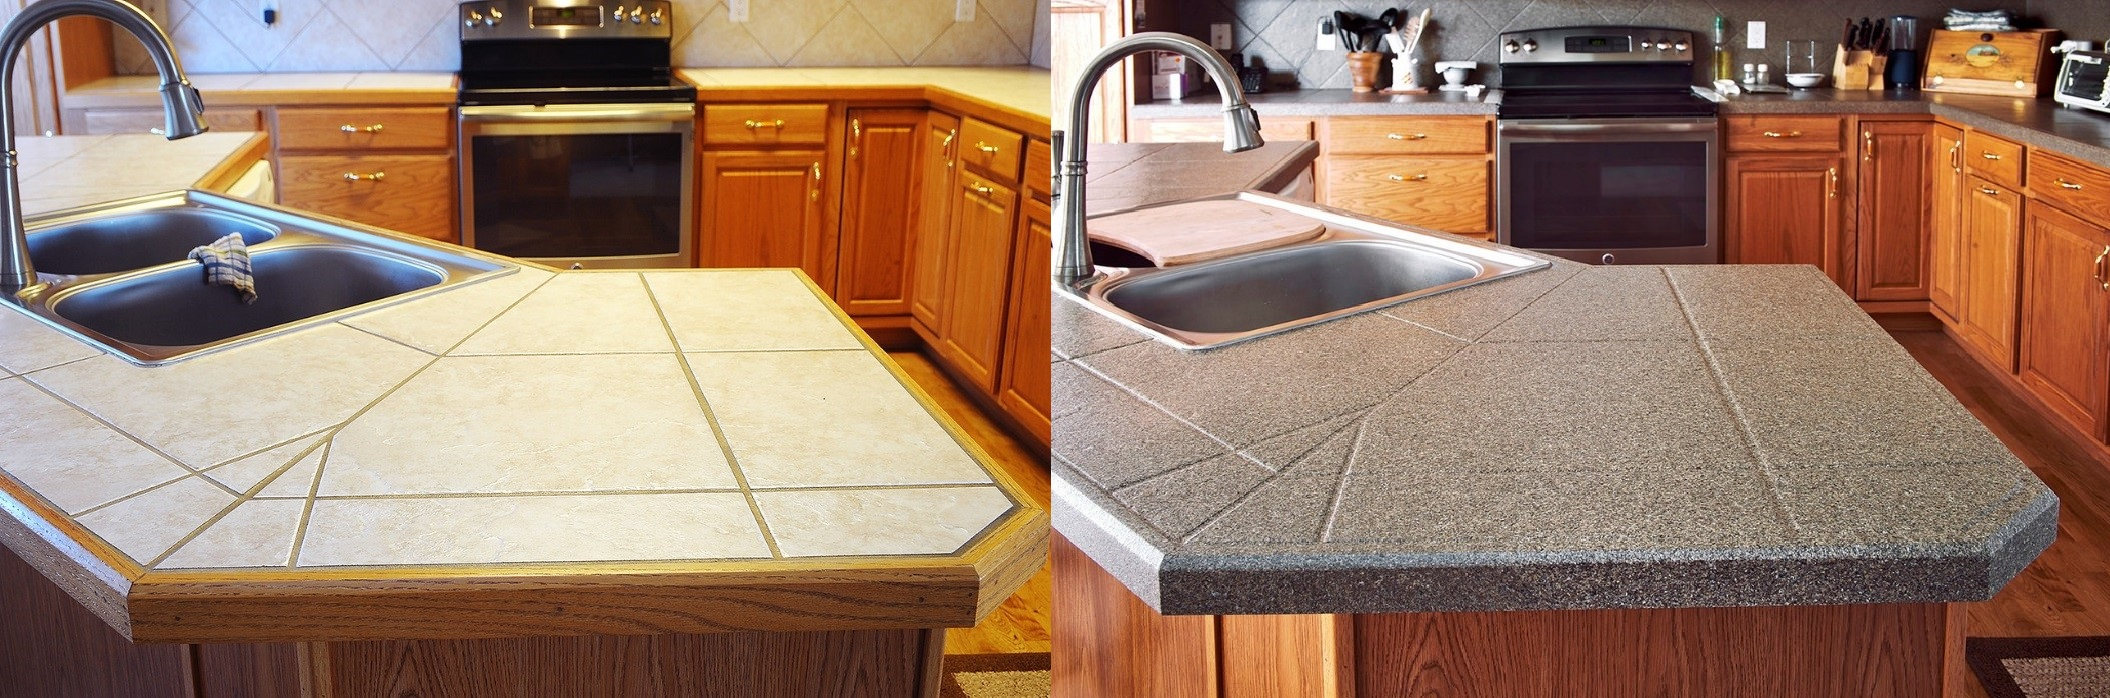 countertops Archives - Miracle Method Surface Refinishing Blog